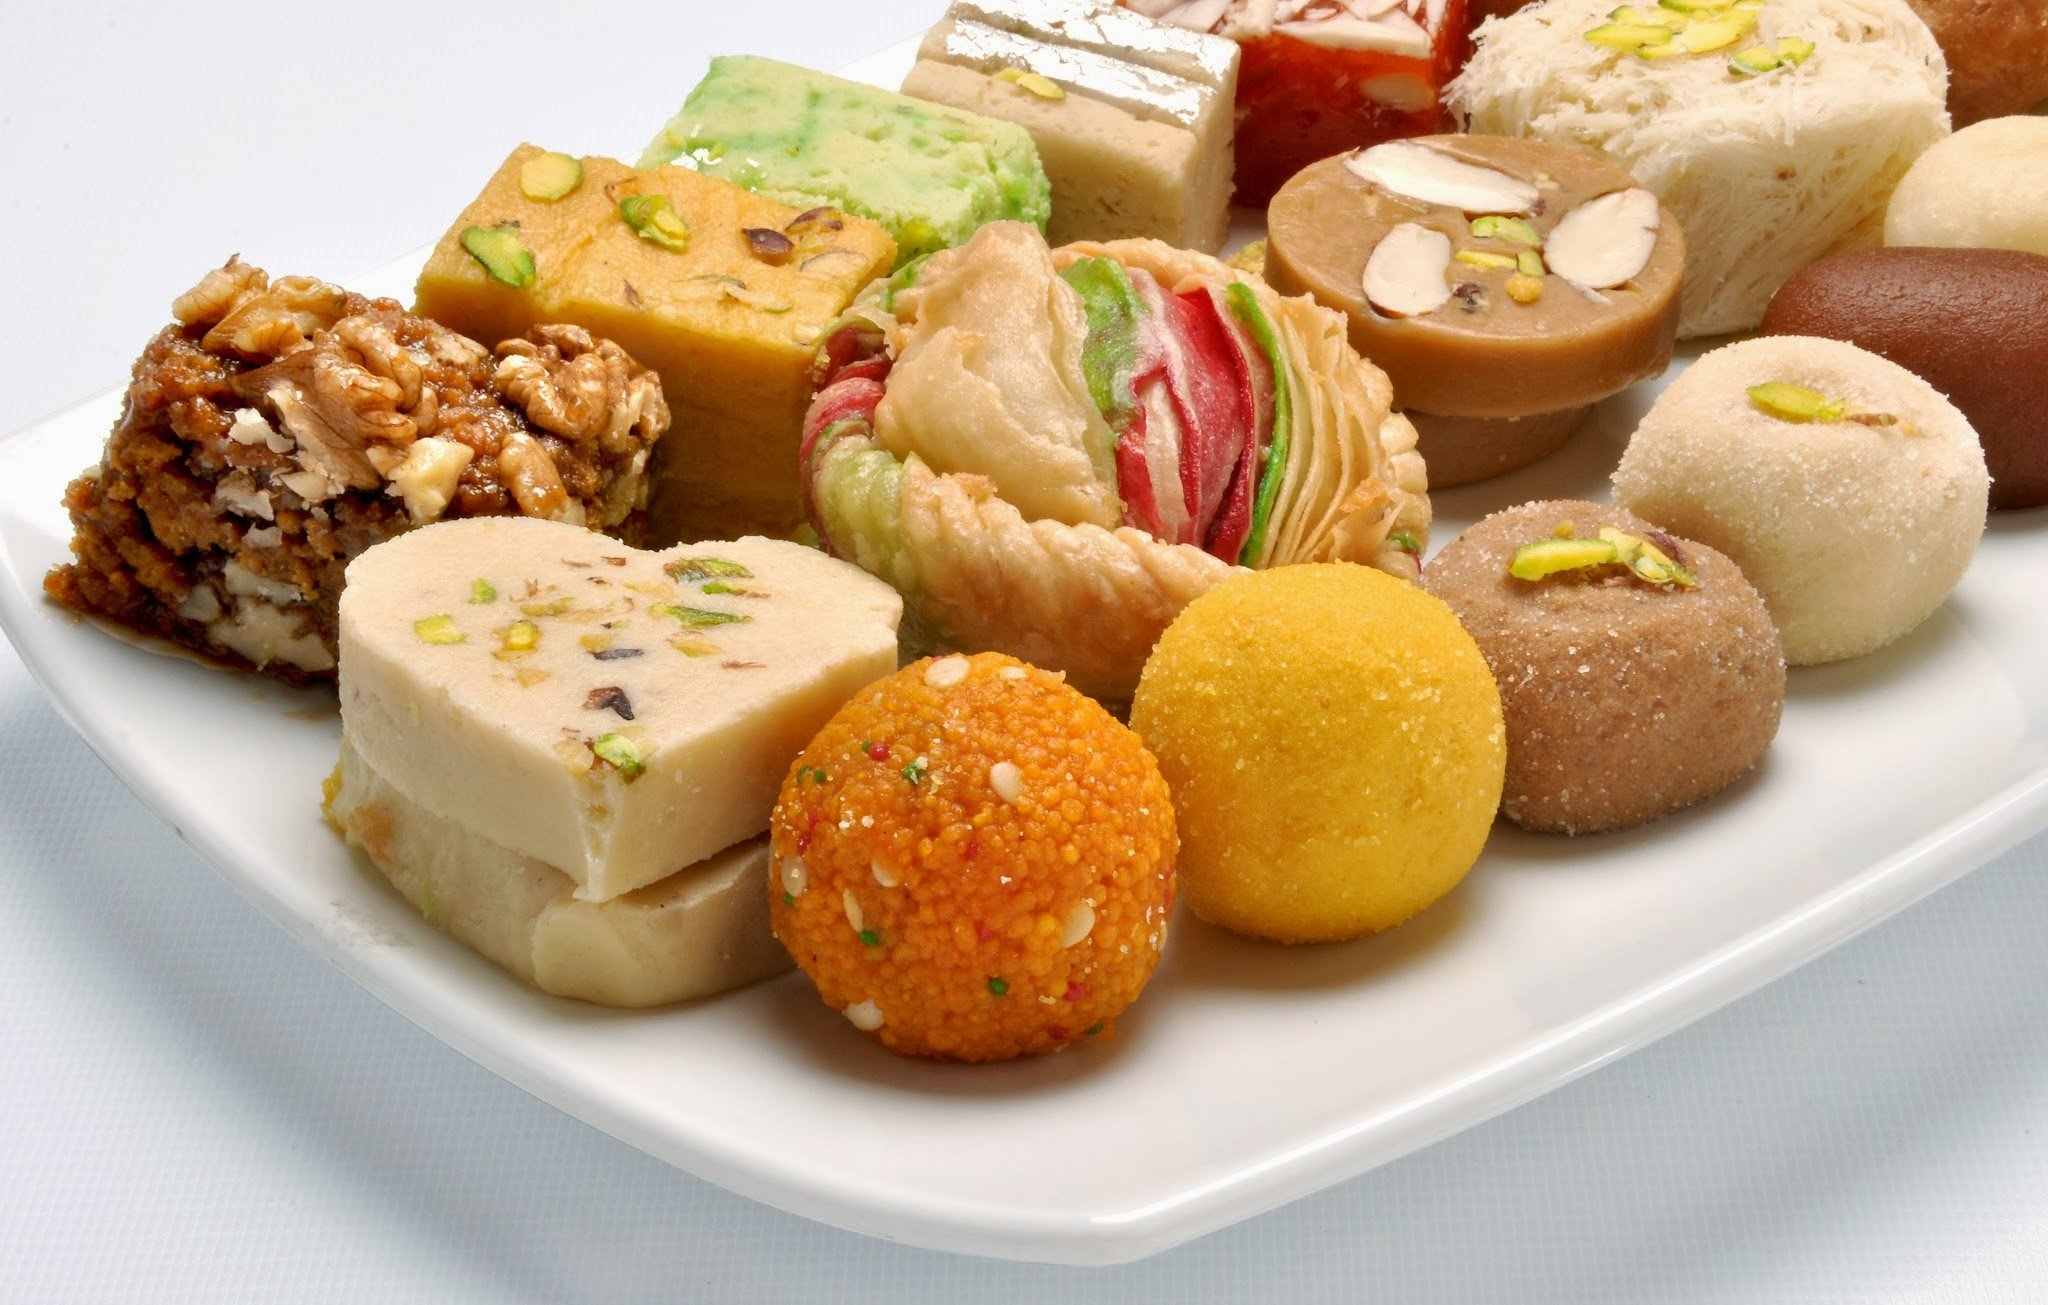 diwali sweets wallpaper for free download